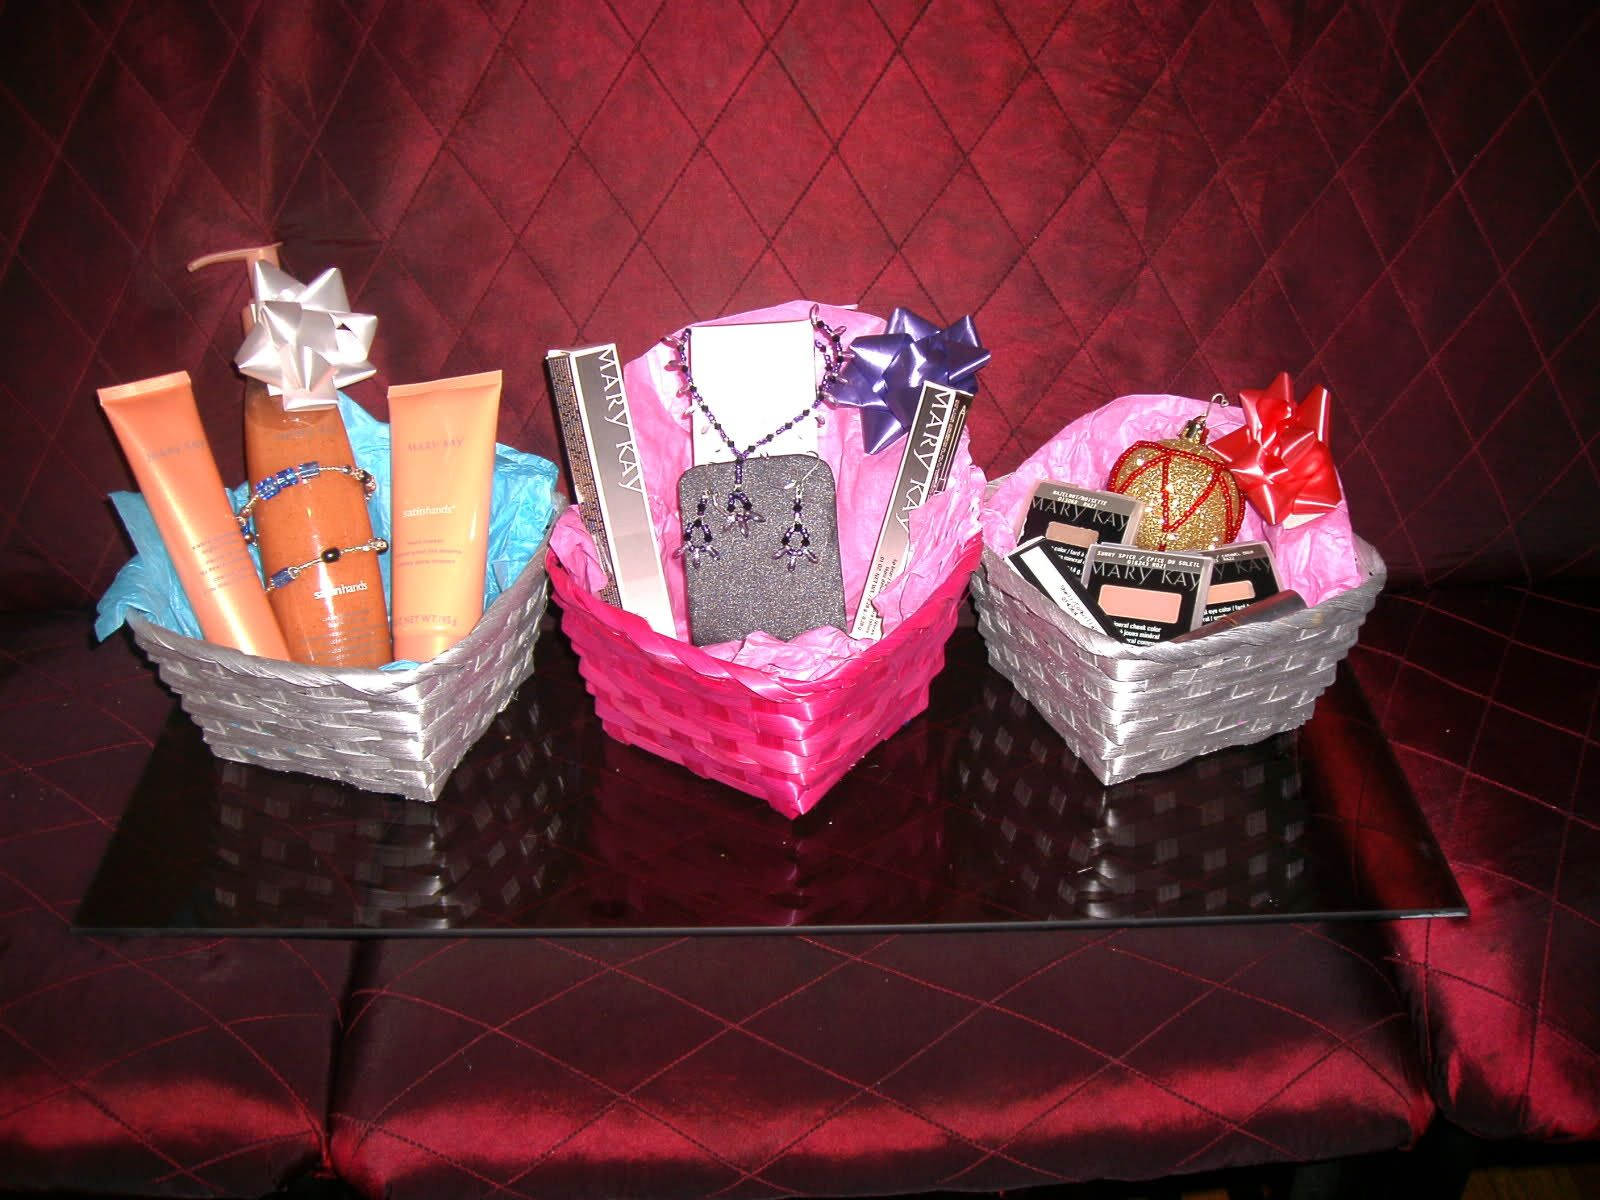 Mary kay gift basket ideas awsome marykay ideas pinterest mary kay gift basket ideas negle Gallery